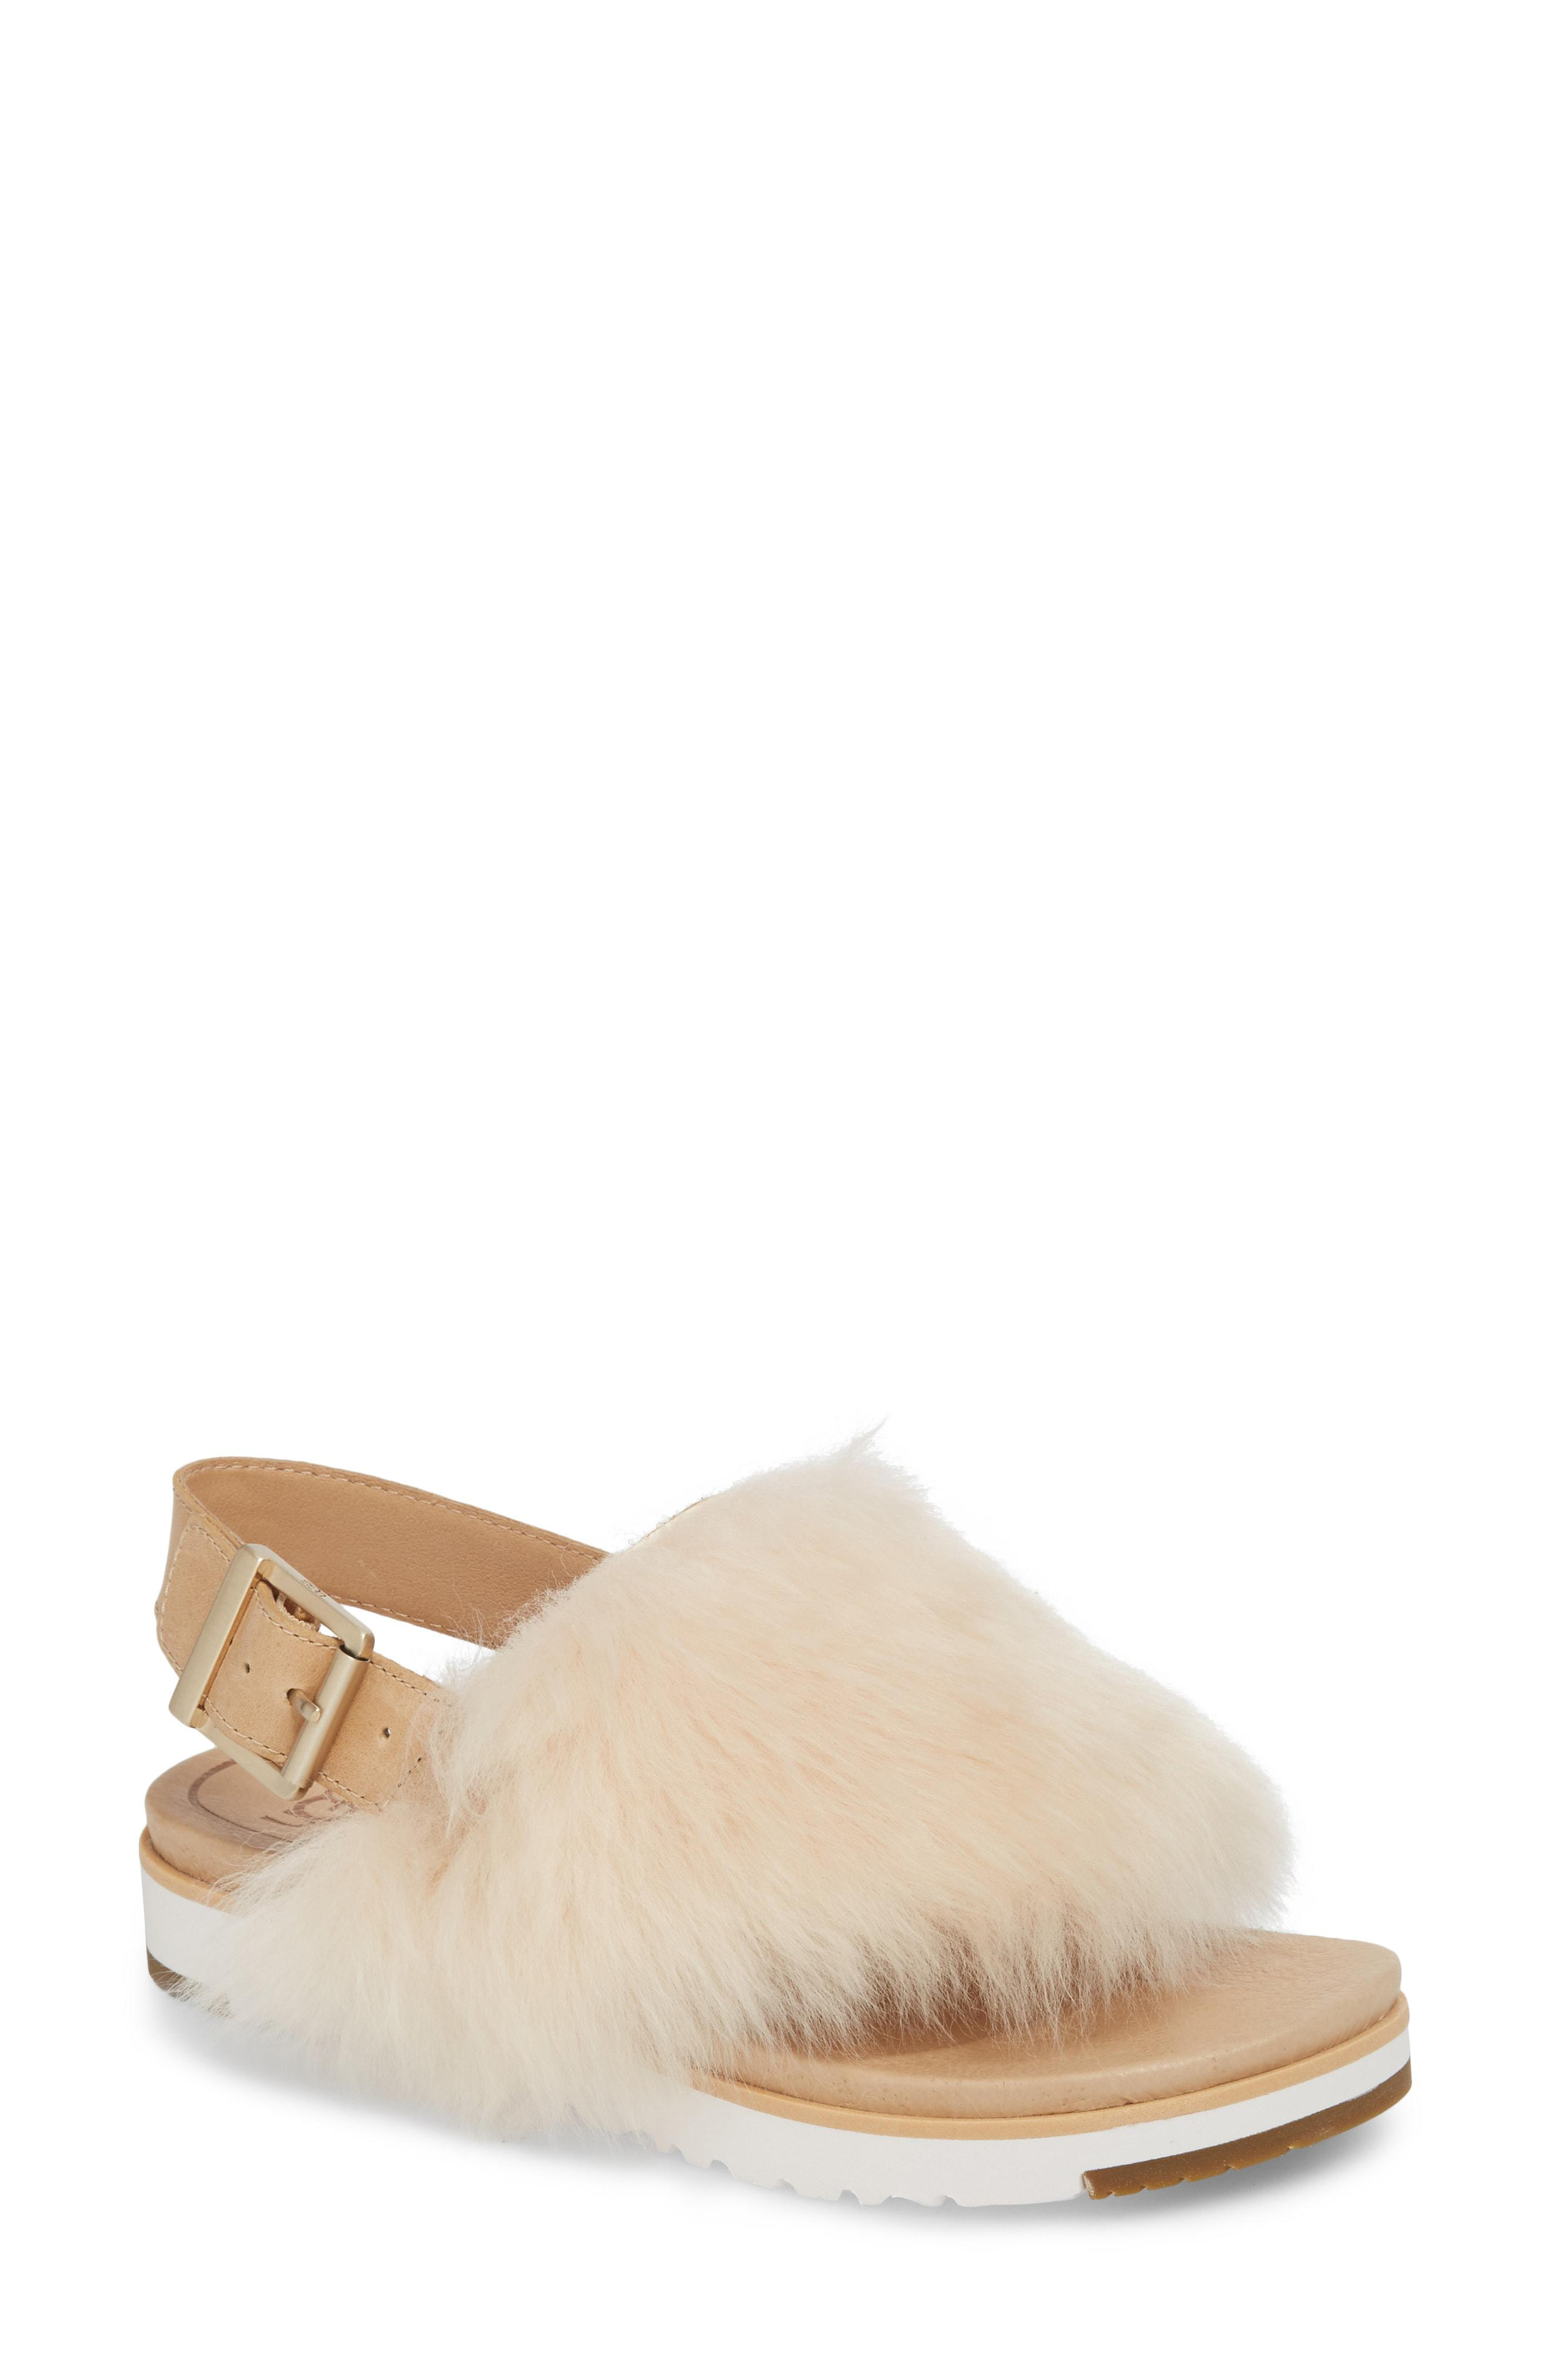 015a65defd8e Lyst - Ugg Ugg Holly Genuine Shearling Sandal - Save 1.2422360248447148%